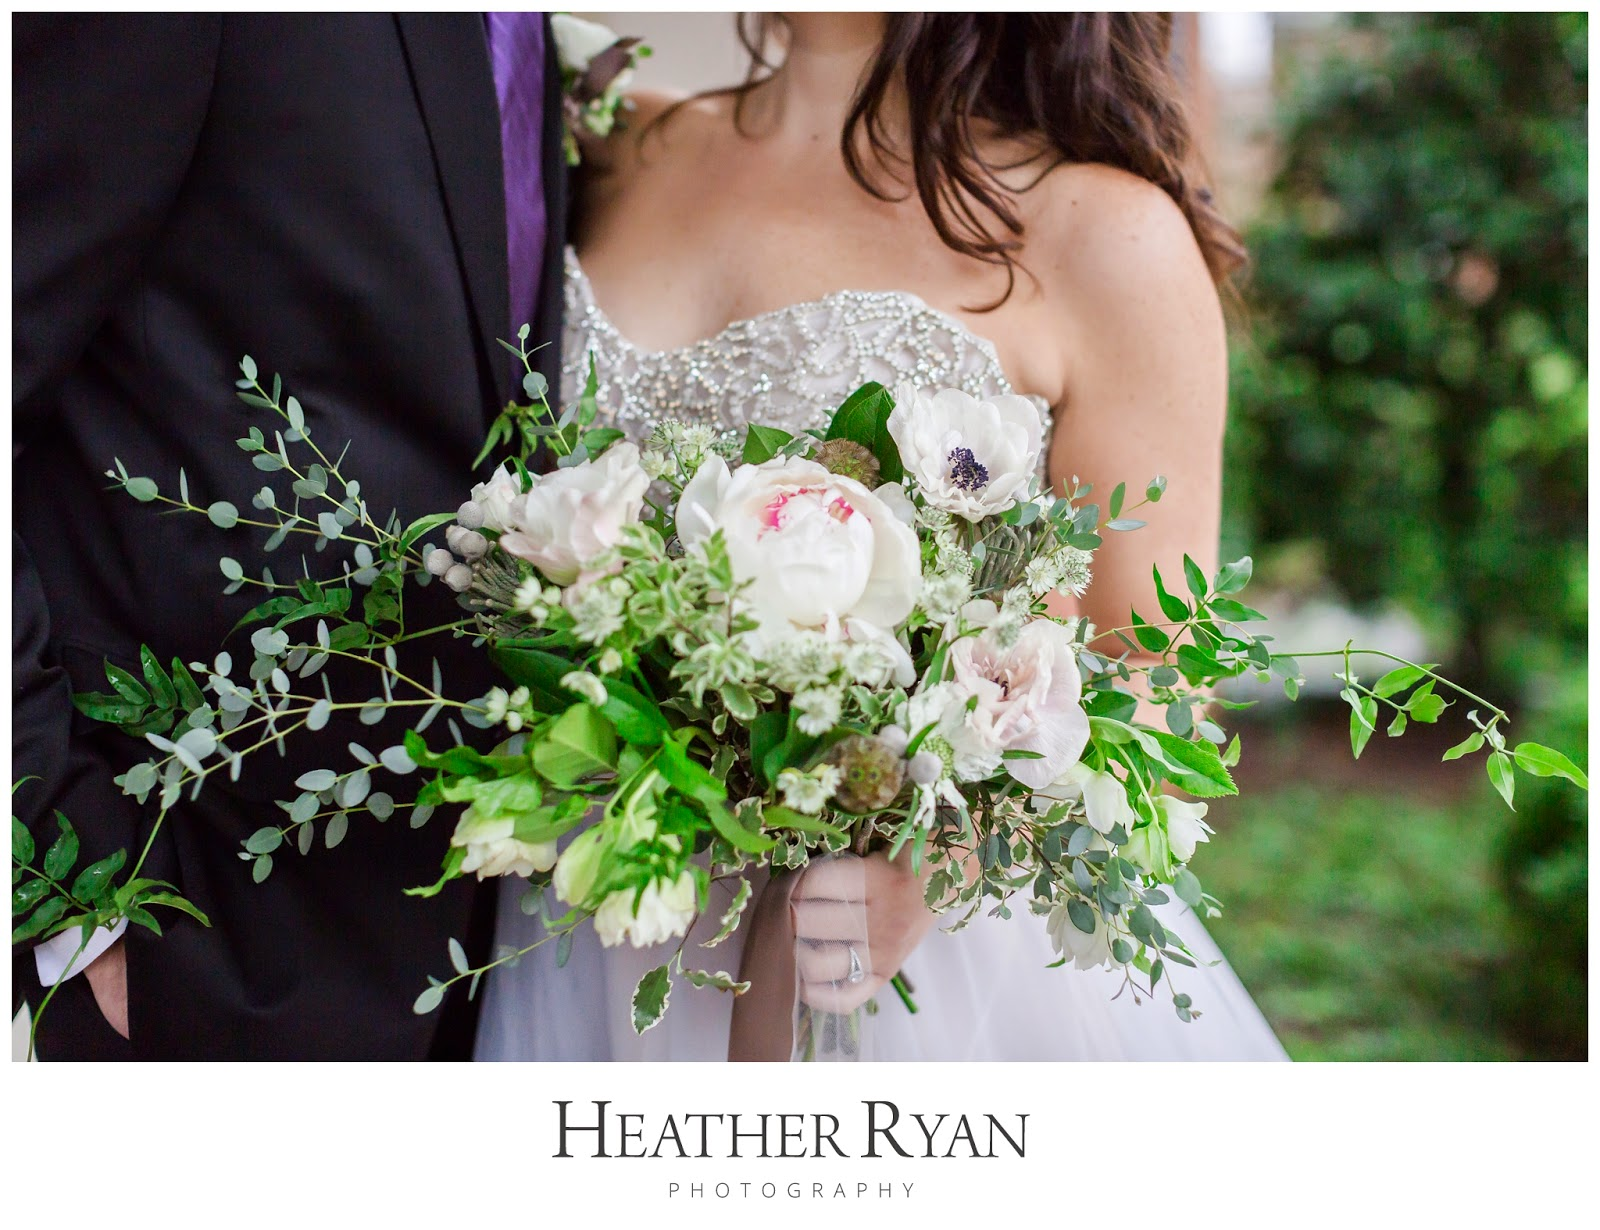 Organic Wedding Inspiration from the Bayside Bride Workshop | Photos by Heather Ryan Photography